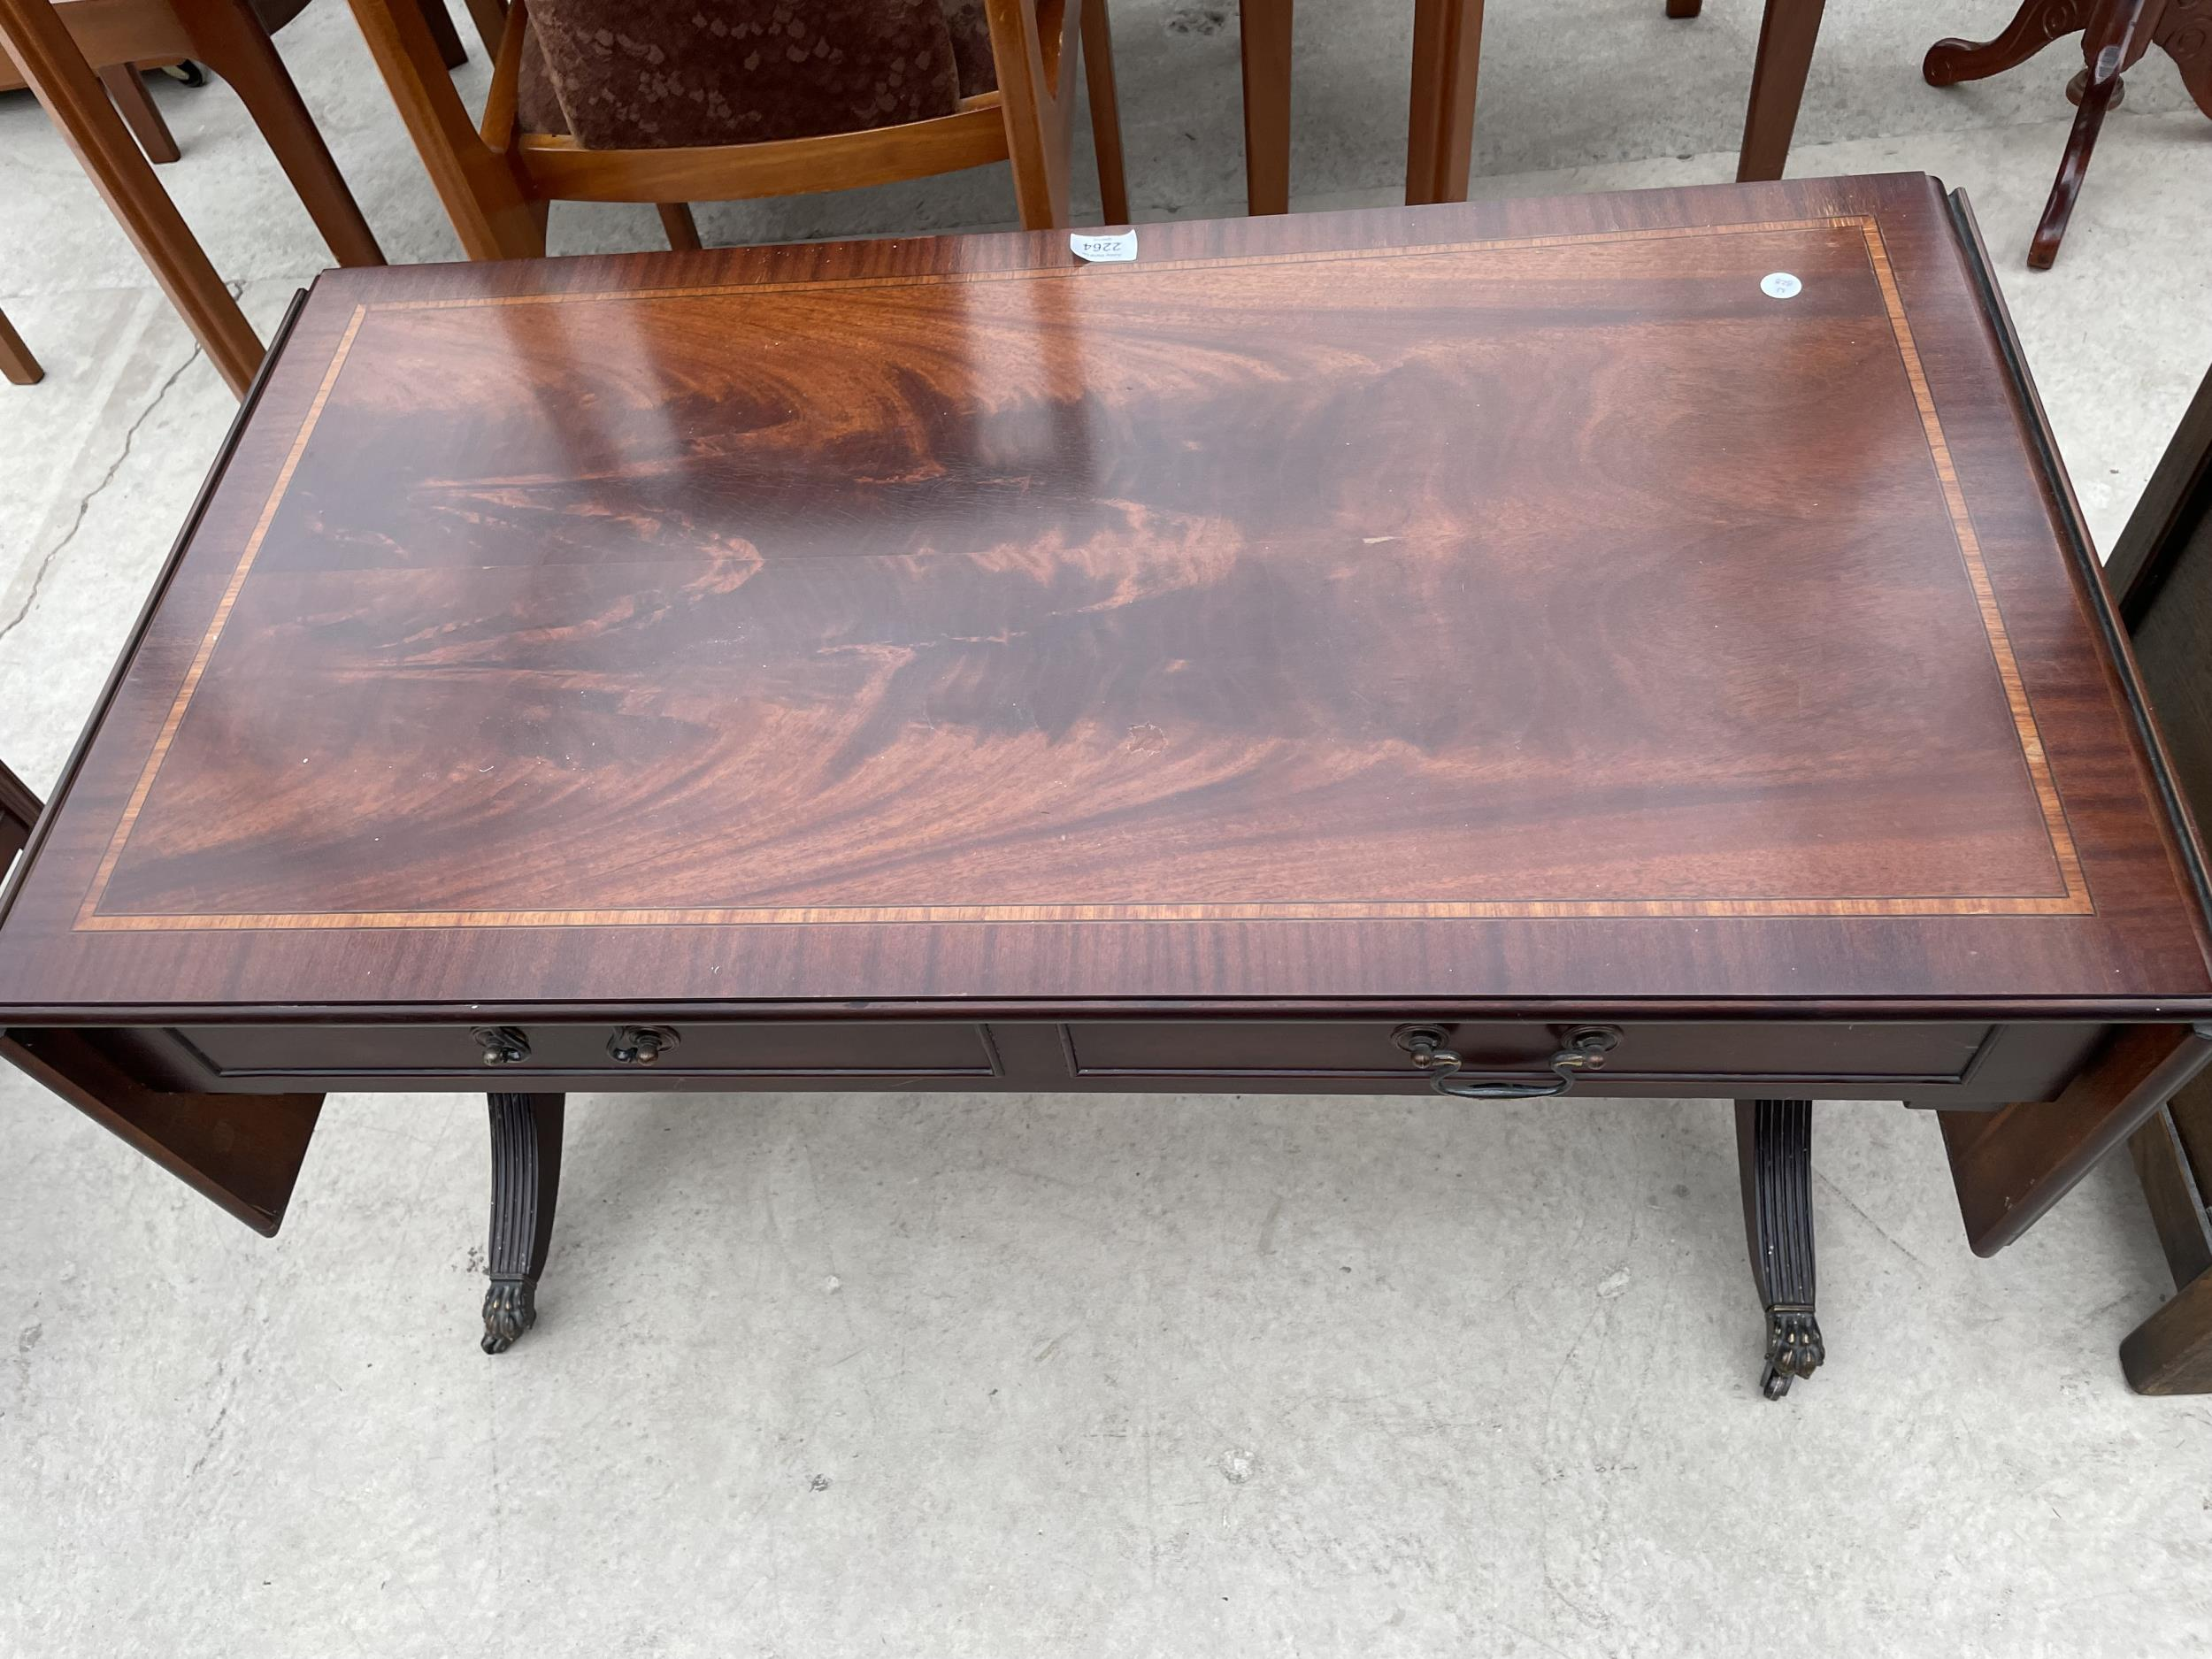 A REPRODUCTION MAHOGANY AND INLAID LOW SOFA STYLE TABLE - Image 2 of 4